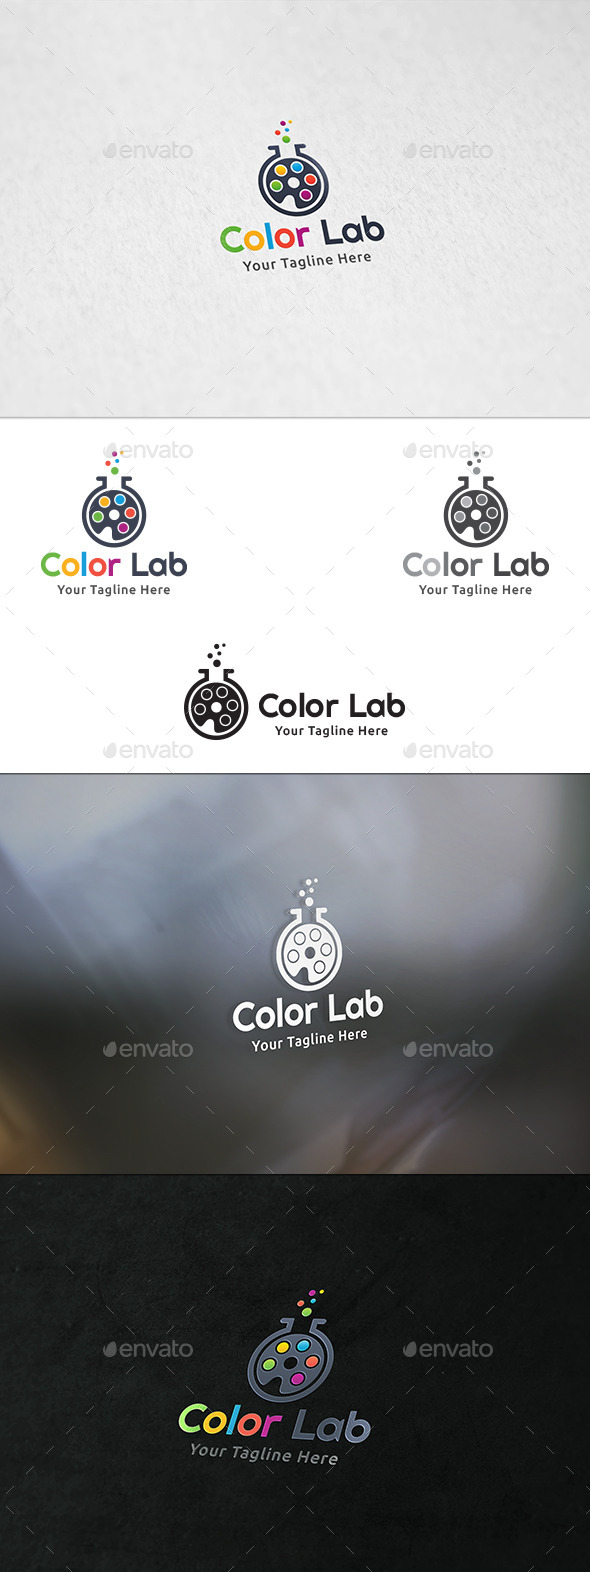 GraphicRiver Color Lab Logo Template 8989126